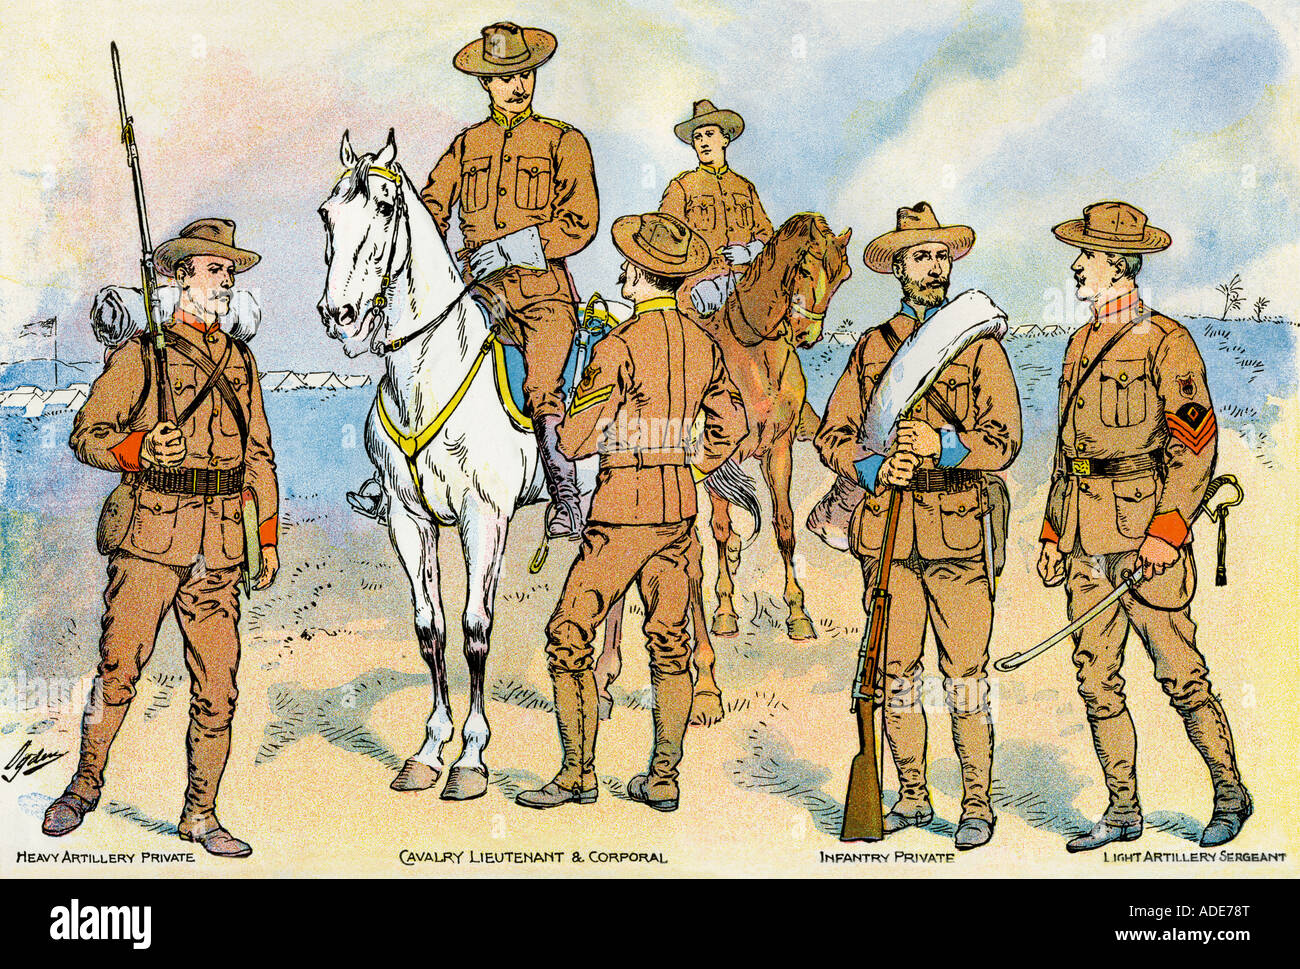 an analysis of the involvement of the united states in the spanish american war Place and structure for reflections and analysis civil war the united states became involved in in the spanish american war 5 what role did.